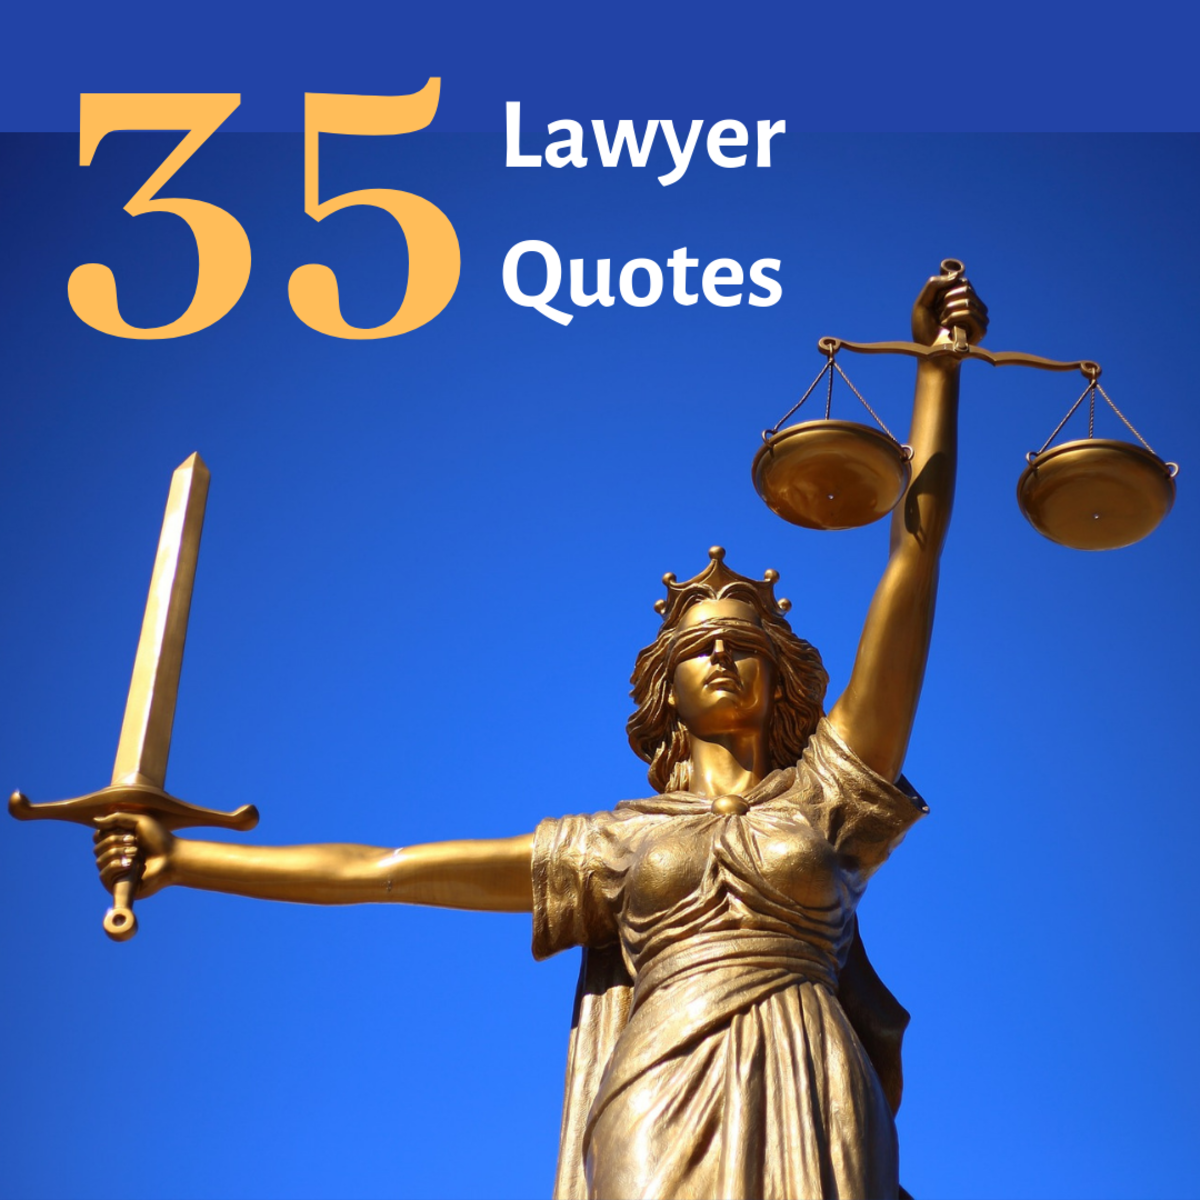 35 Funny and Inspirational Lawyer Quotes